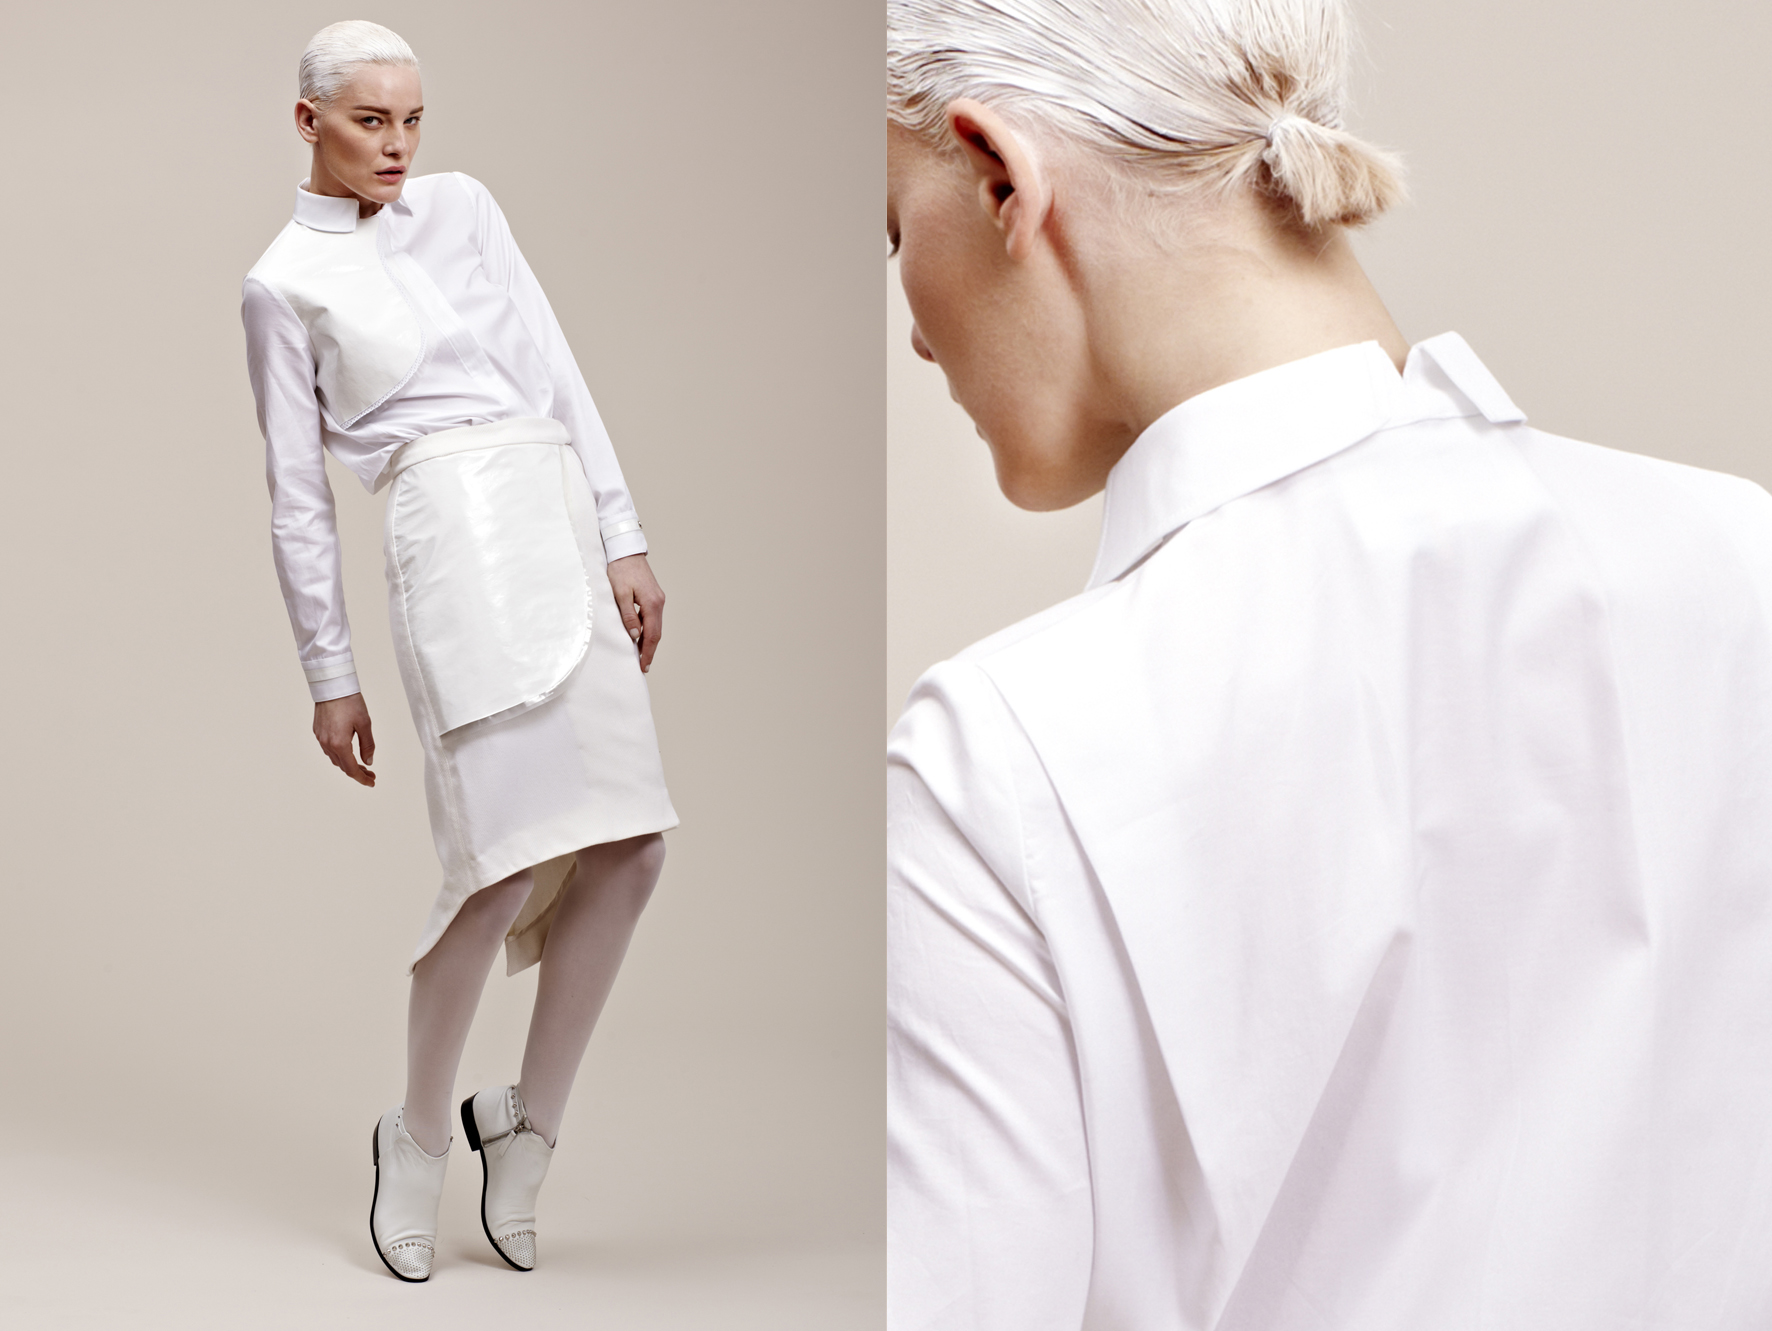 white cotton shirt with leather and plastic gun flap patent leather and plastic detailing wool skirt with leather patent and plastic gun flap taping detailing